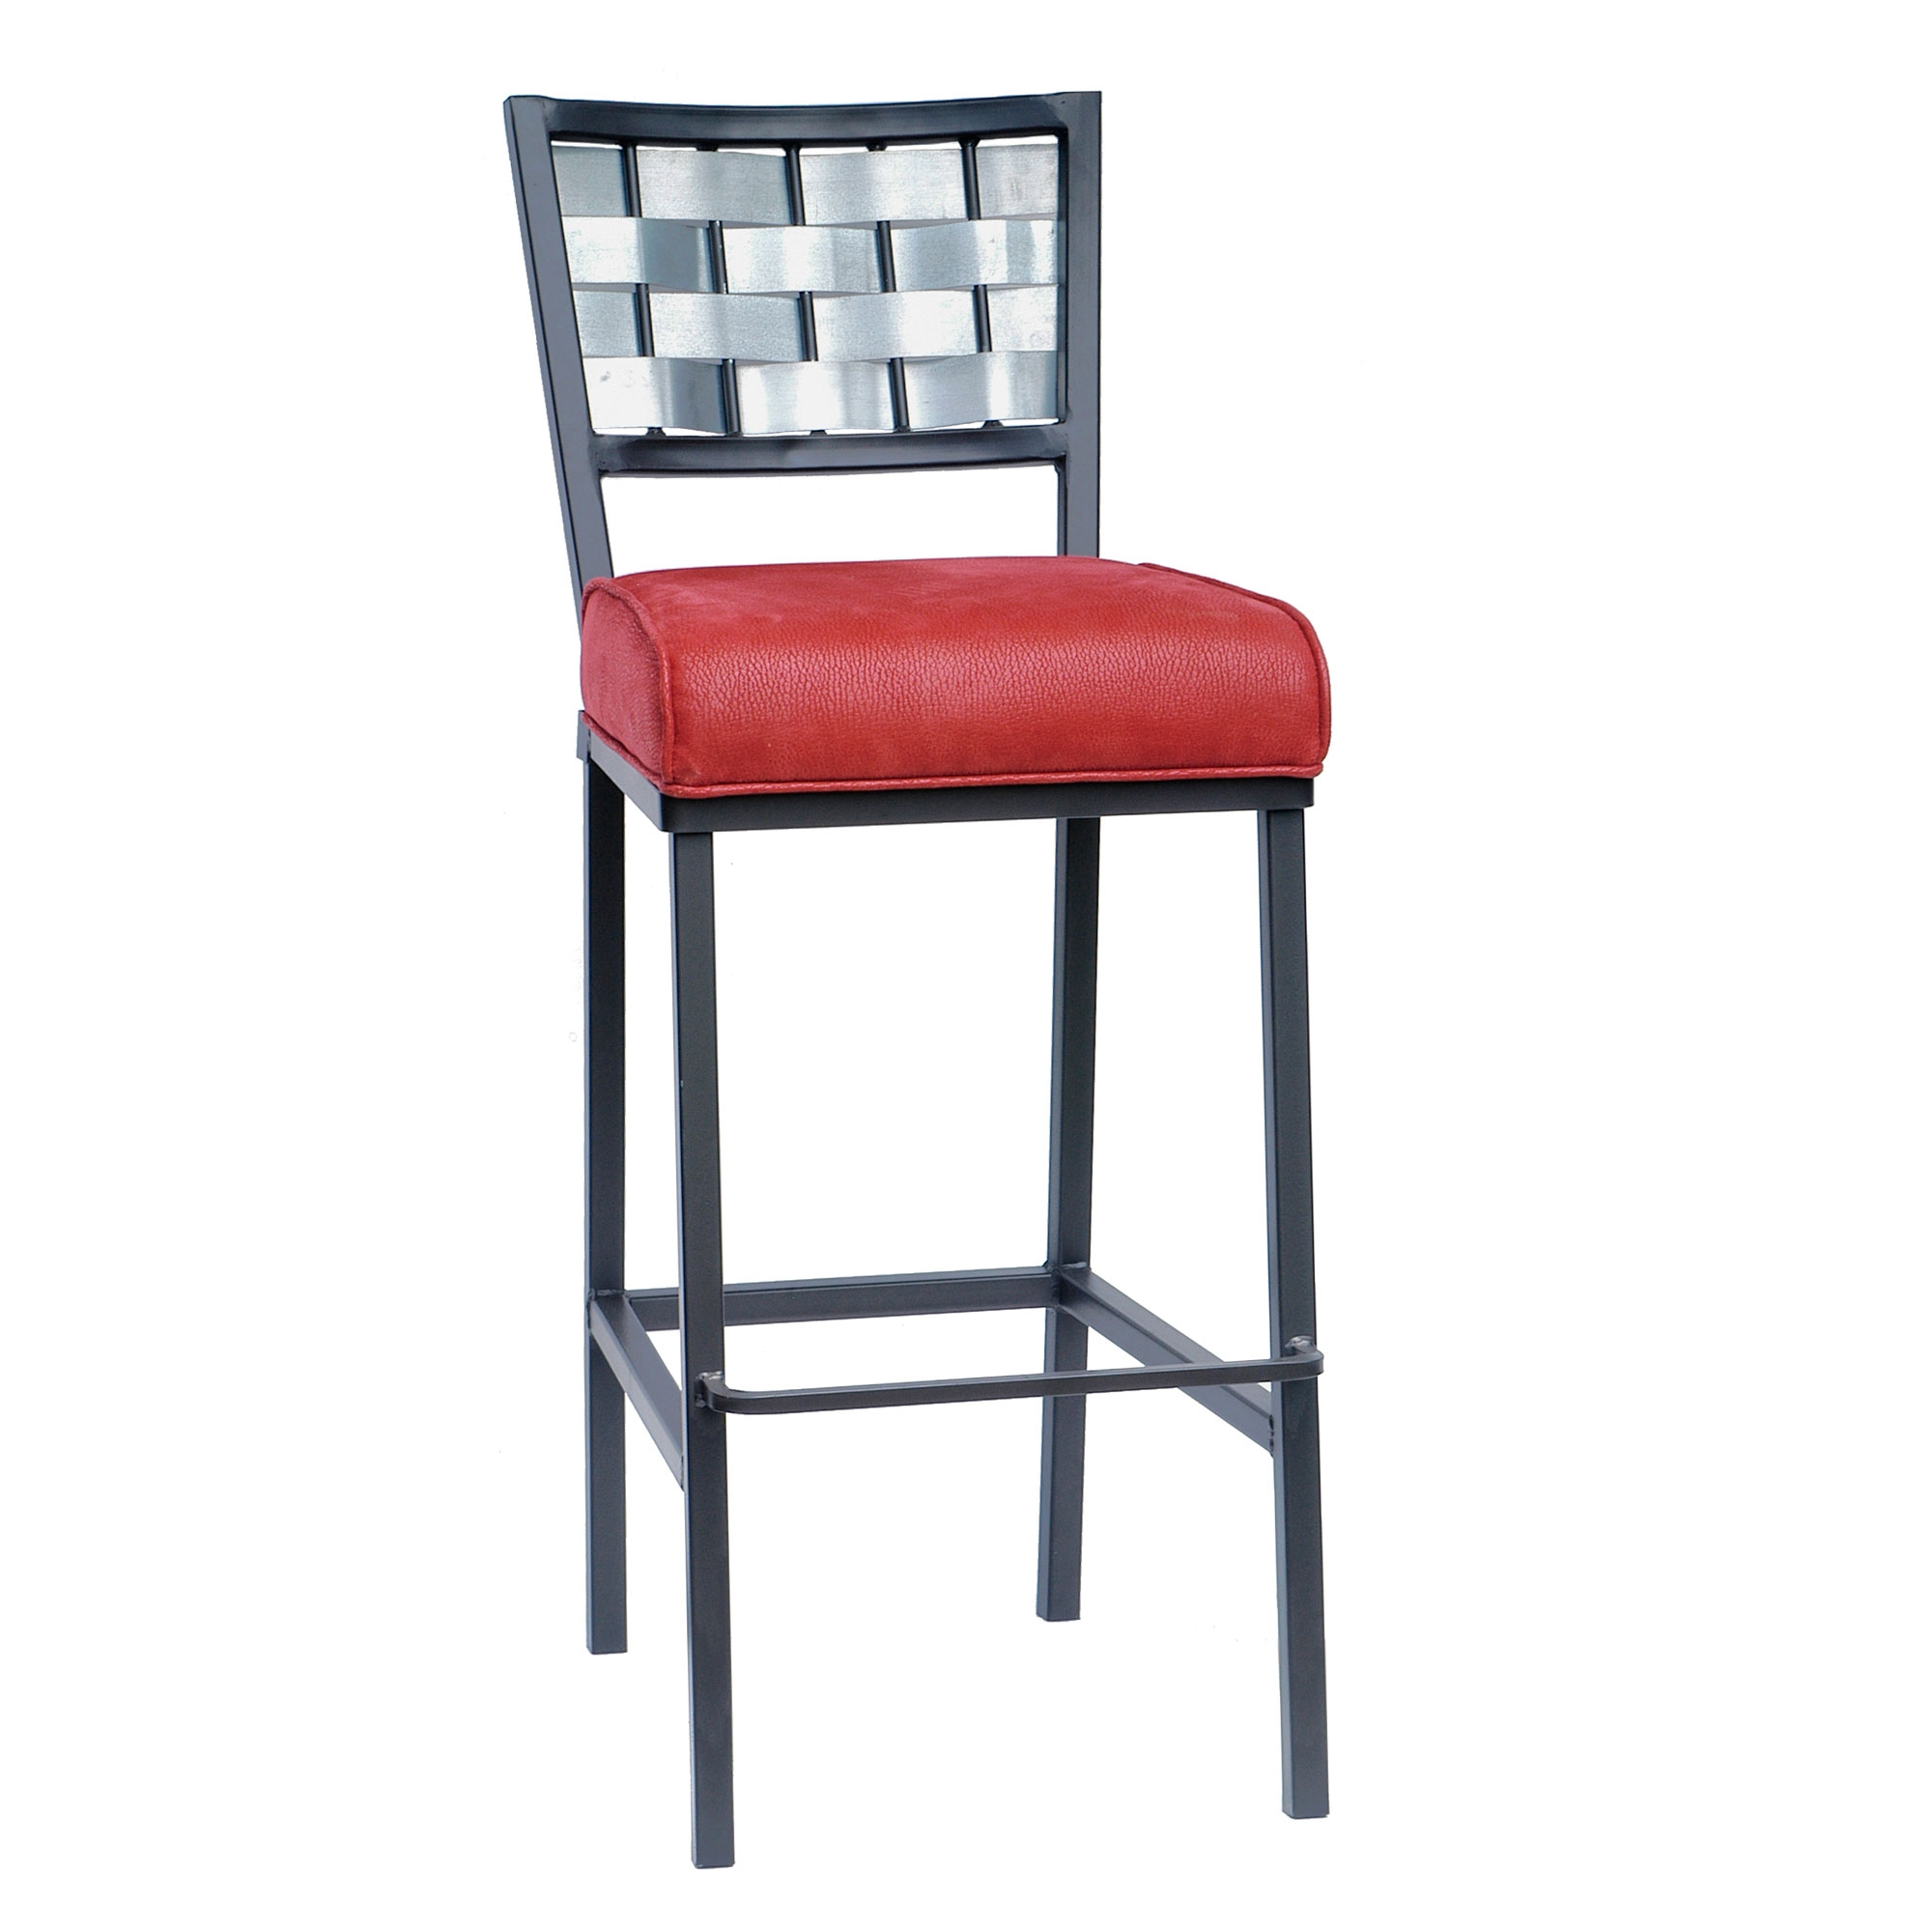 Square Bar Stools ~ Rushton square bar stool quot